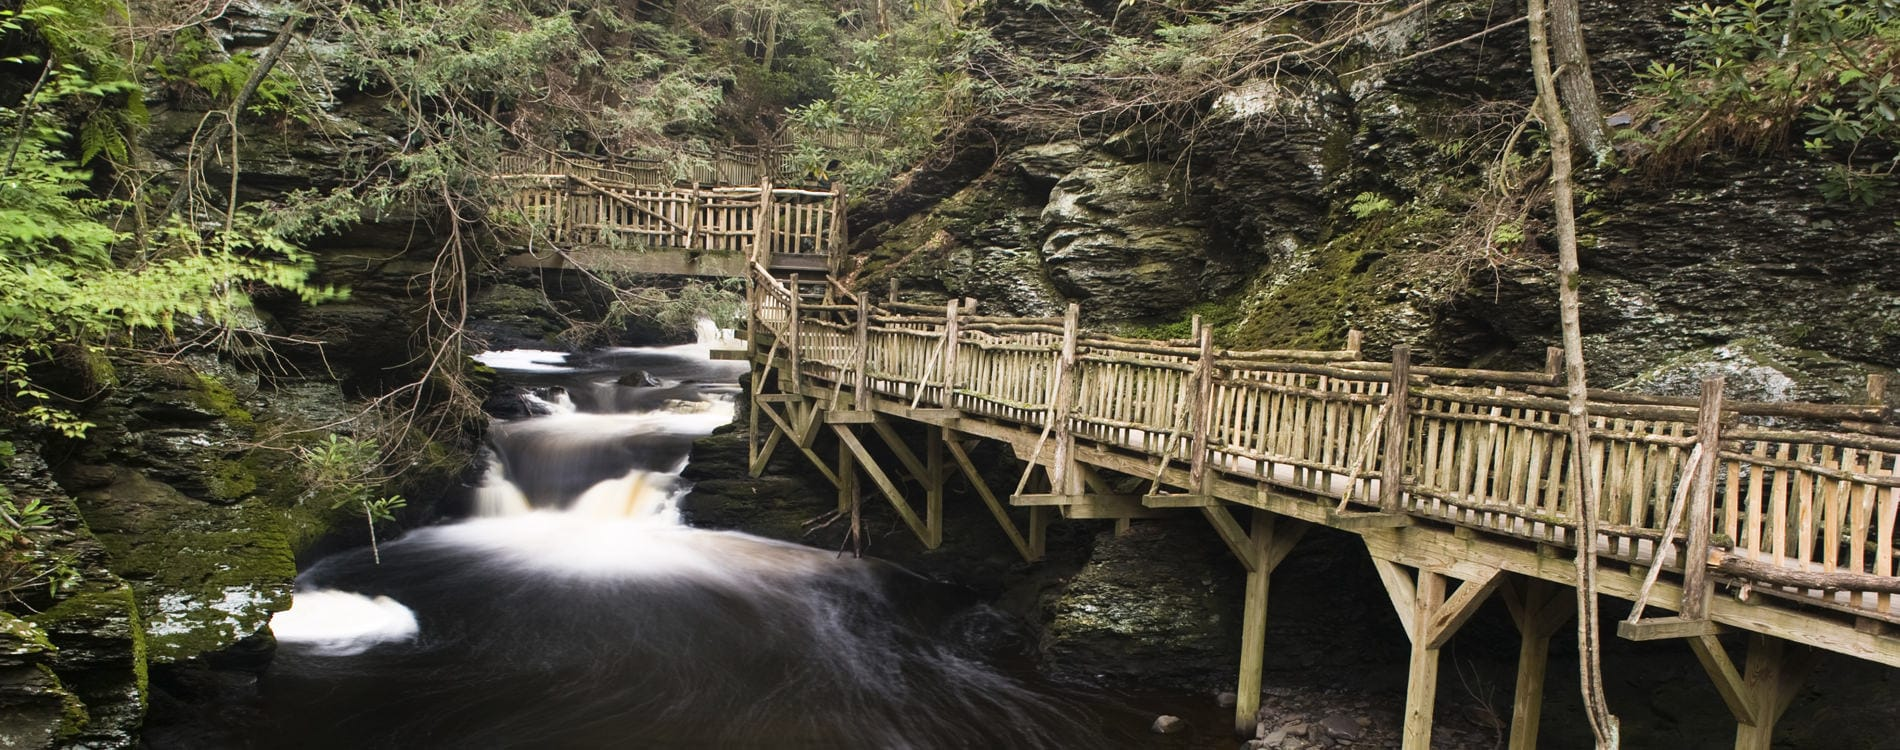 Bushkill Falls Footbridge in the Poconos Pennsylvania